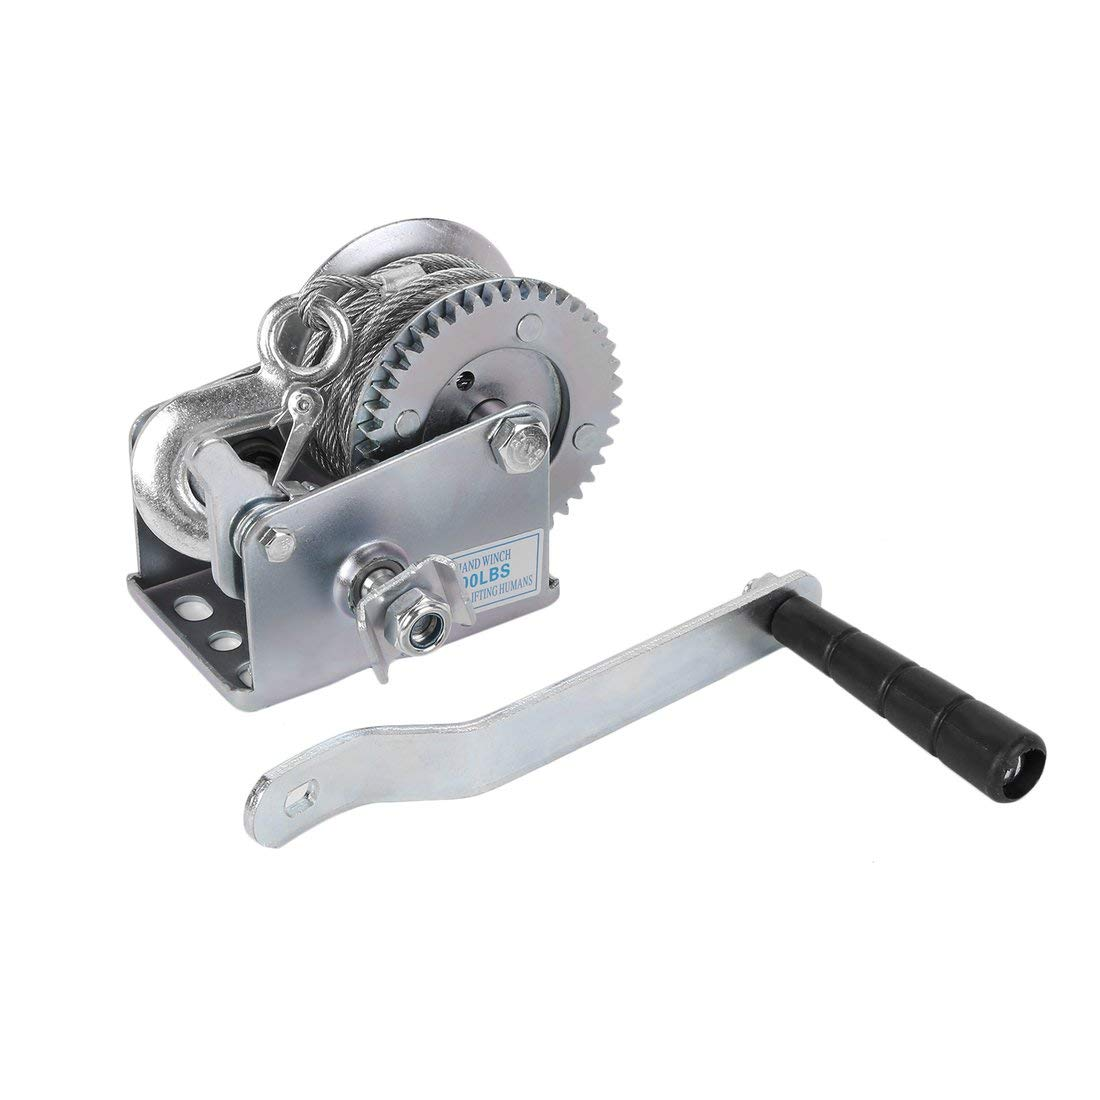 Durable Steel Wire Cable 600 Lbs Load Boat Trailer Manual Operated Hand Winch - Silver Formulaone